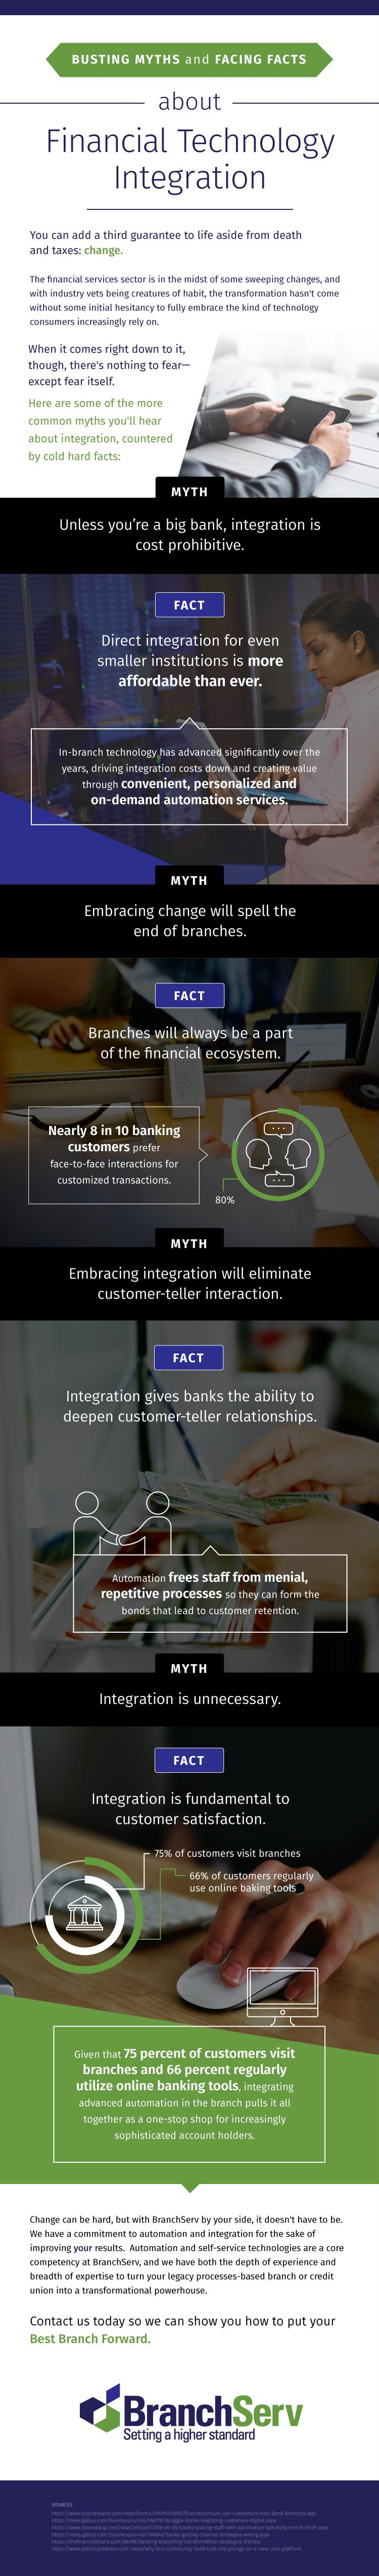 financial technology integration